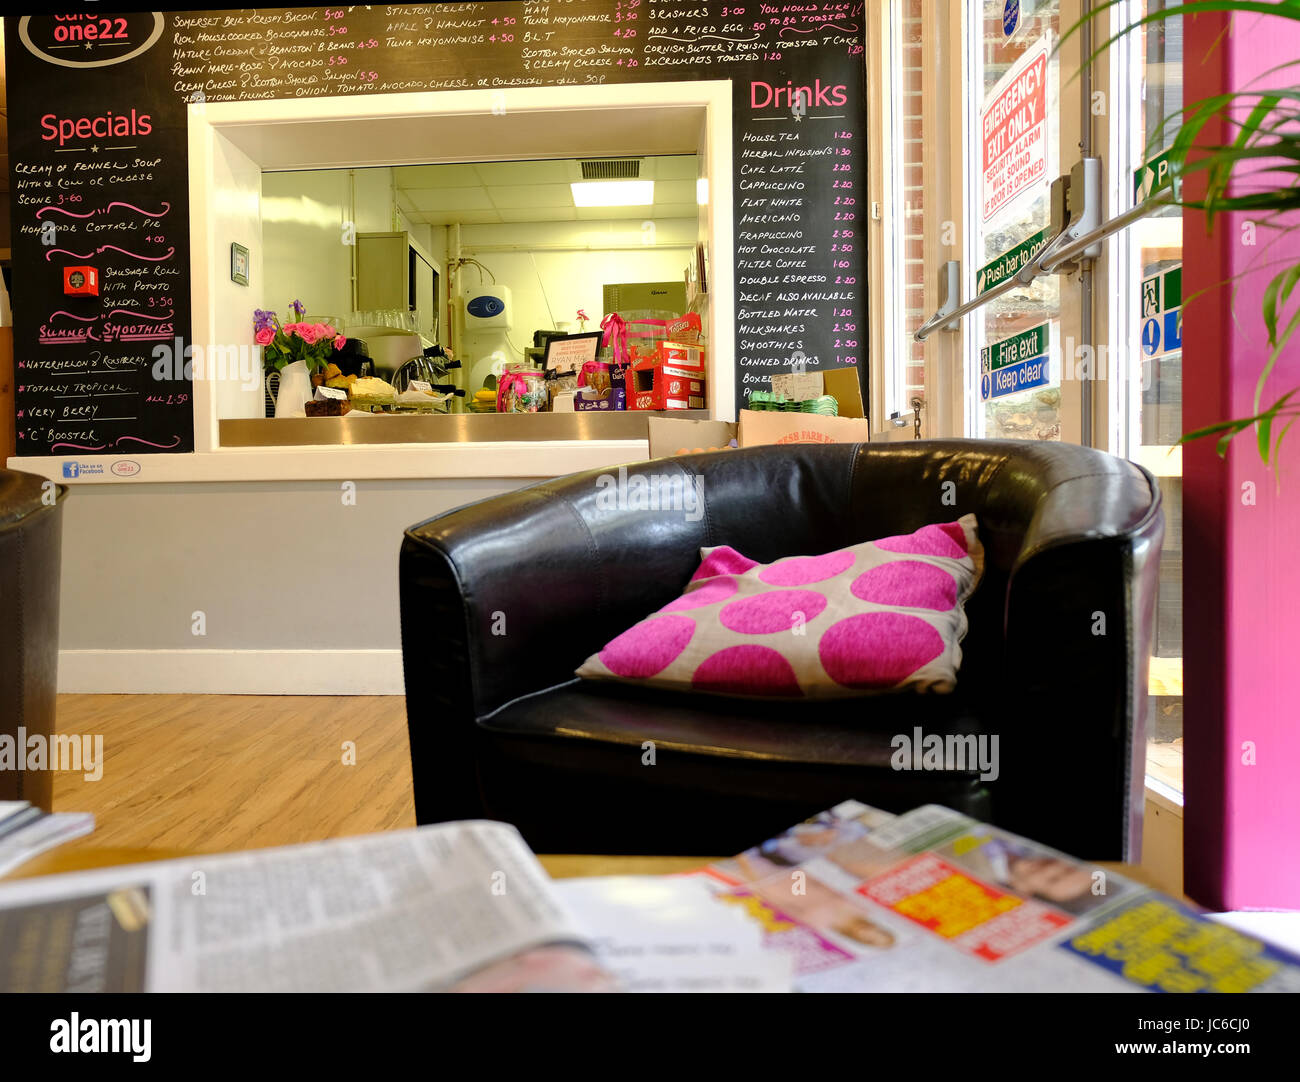 UK Cafe interior with comfy chairs and newspapers - Stock Image